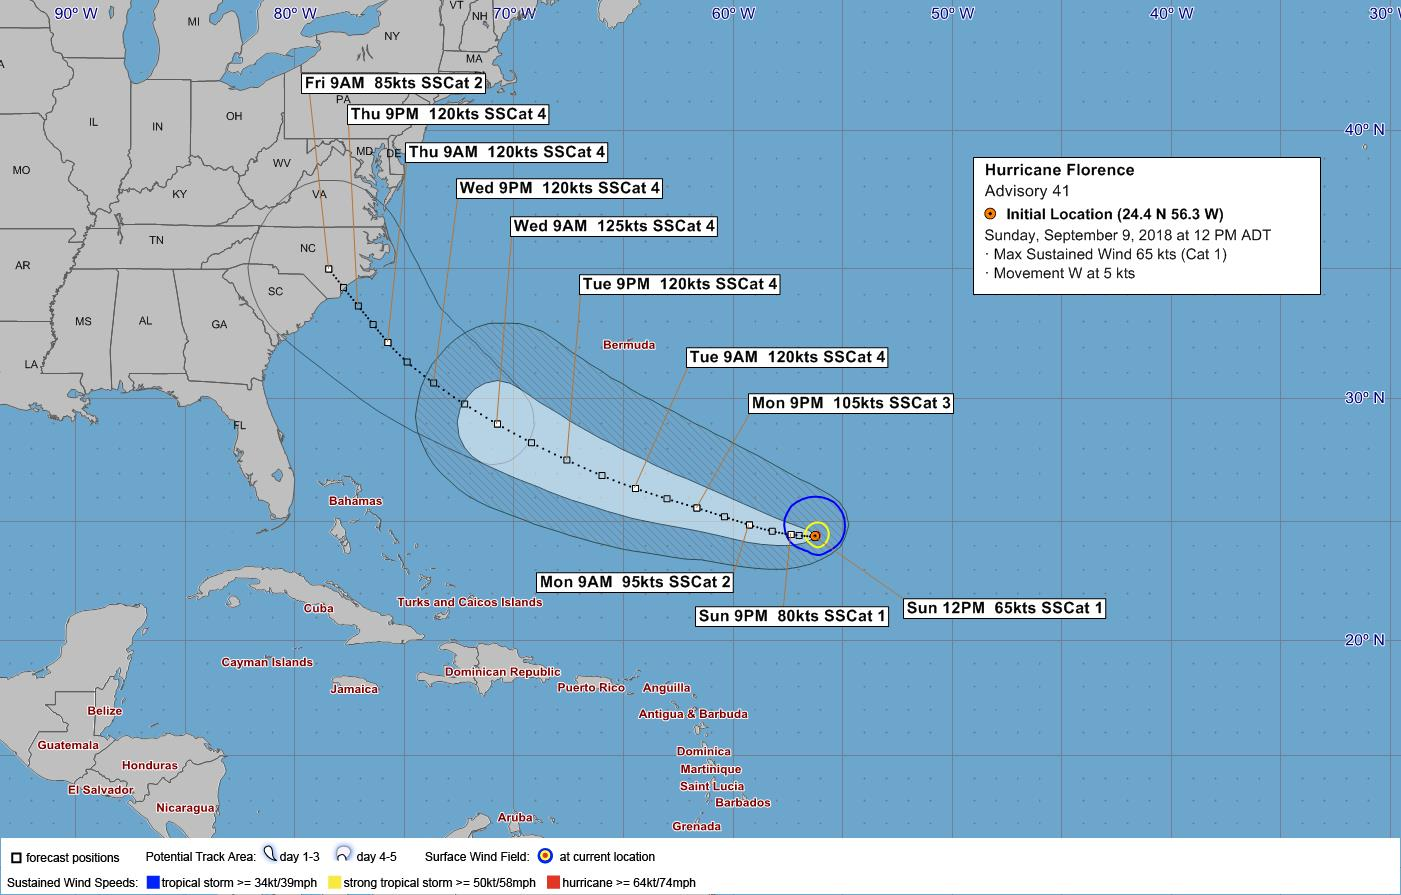 Zach Daniel provides update on potential Hurricane Florence impact in Virginia